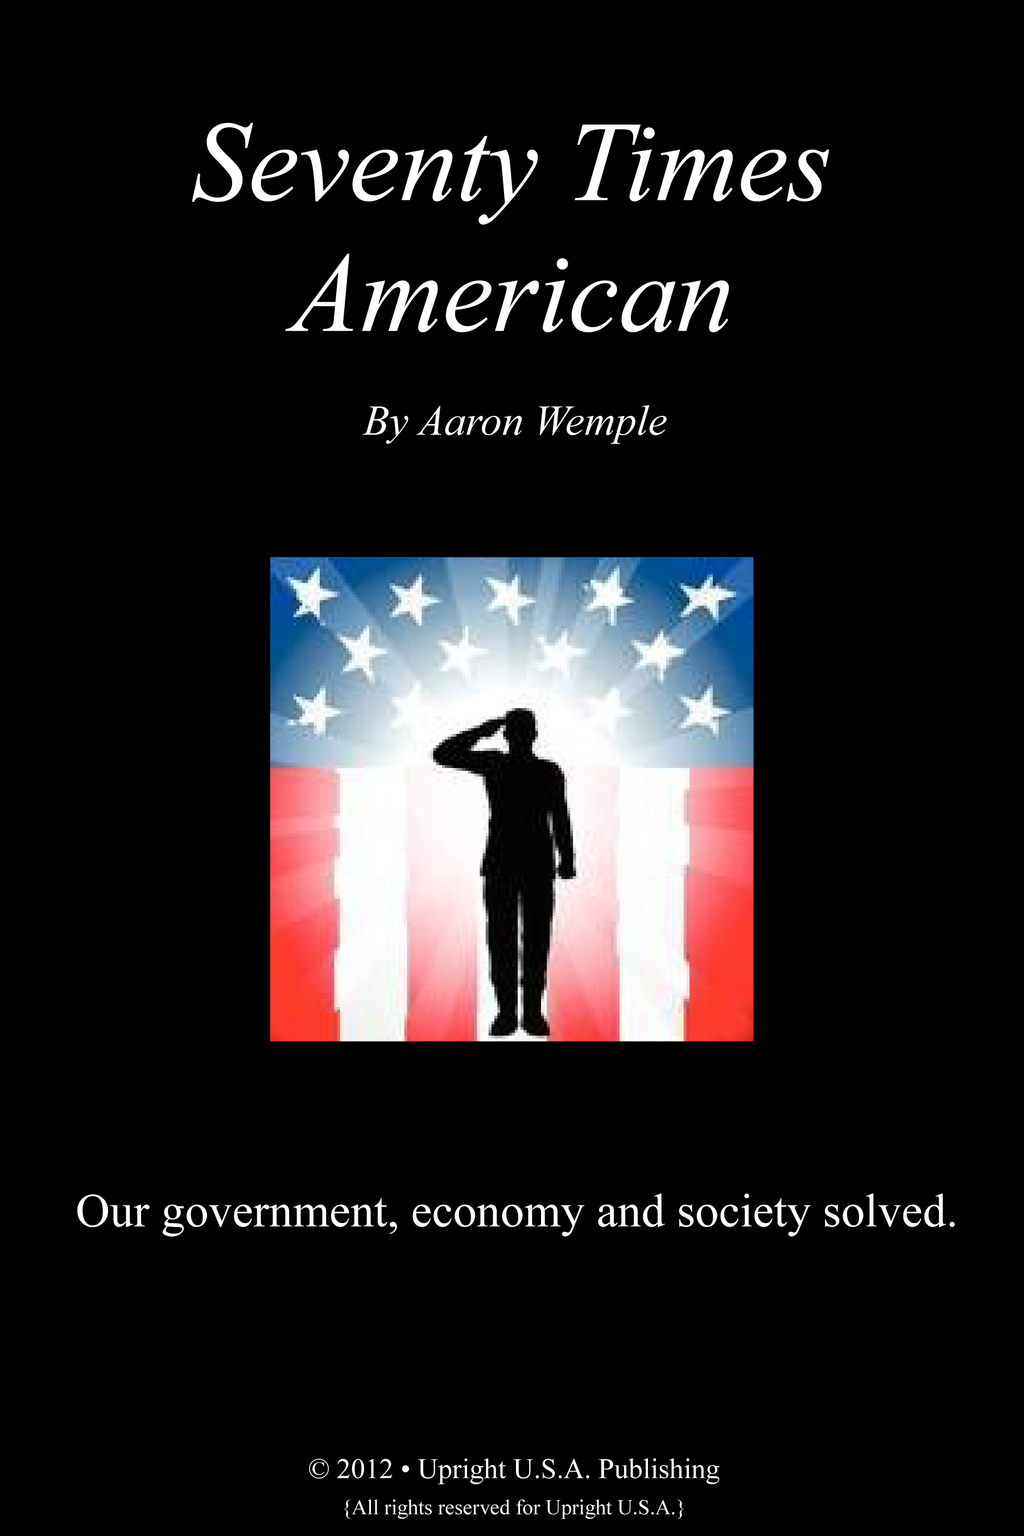 Seventy Times American: Our Government, Economy and Society Solced.